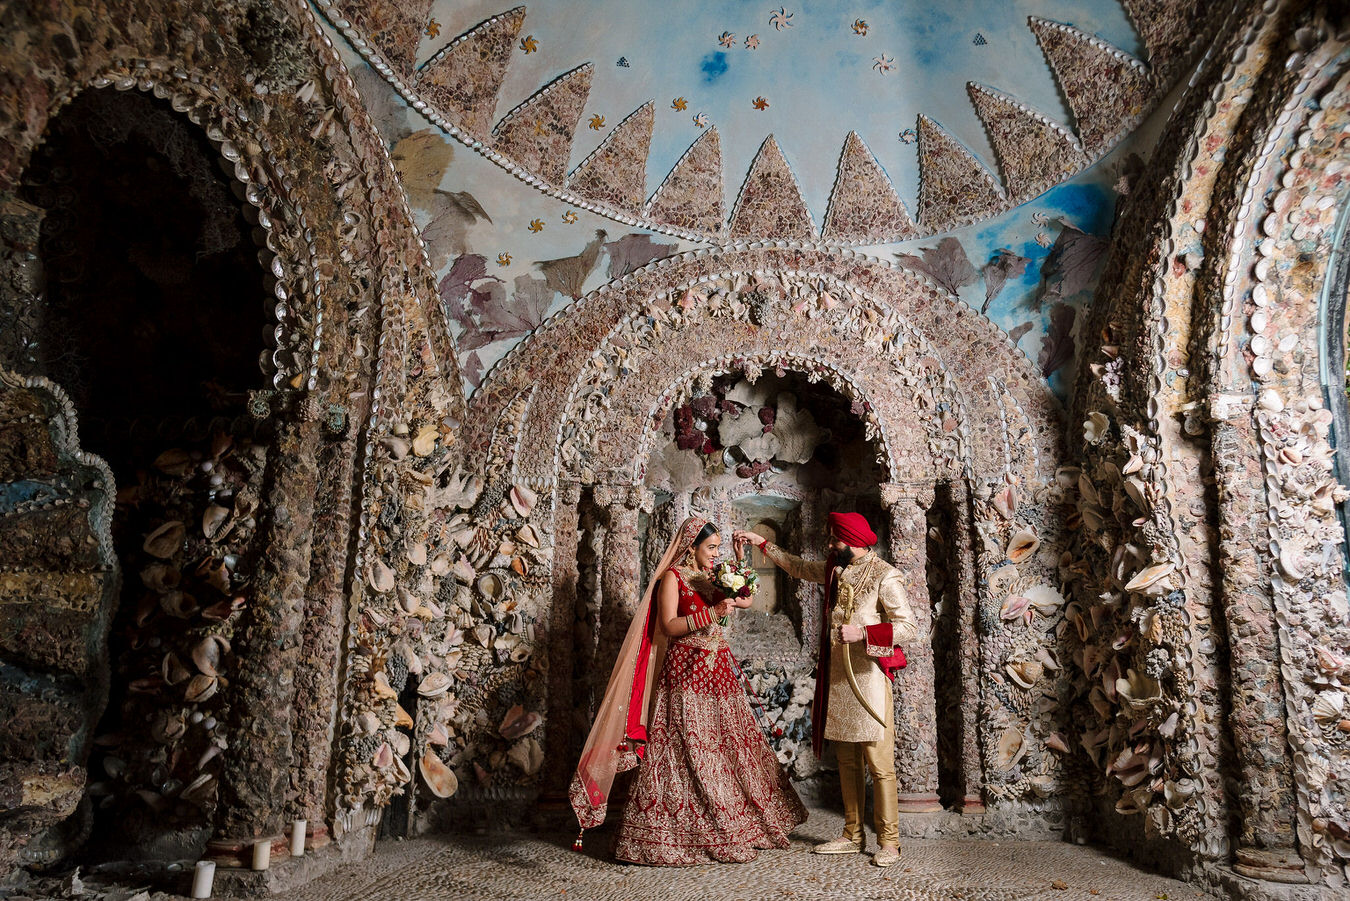 Sikh Asian wedding groom with his kirpan in hand and a bride with a bouquet are dancing inside the shell grotto